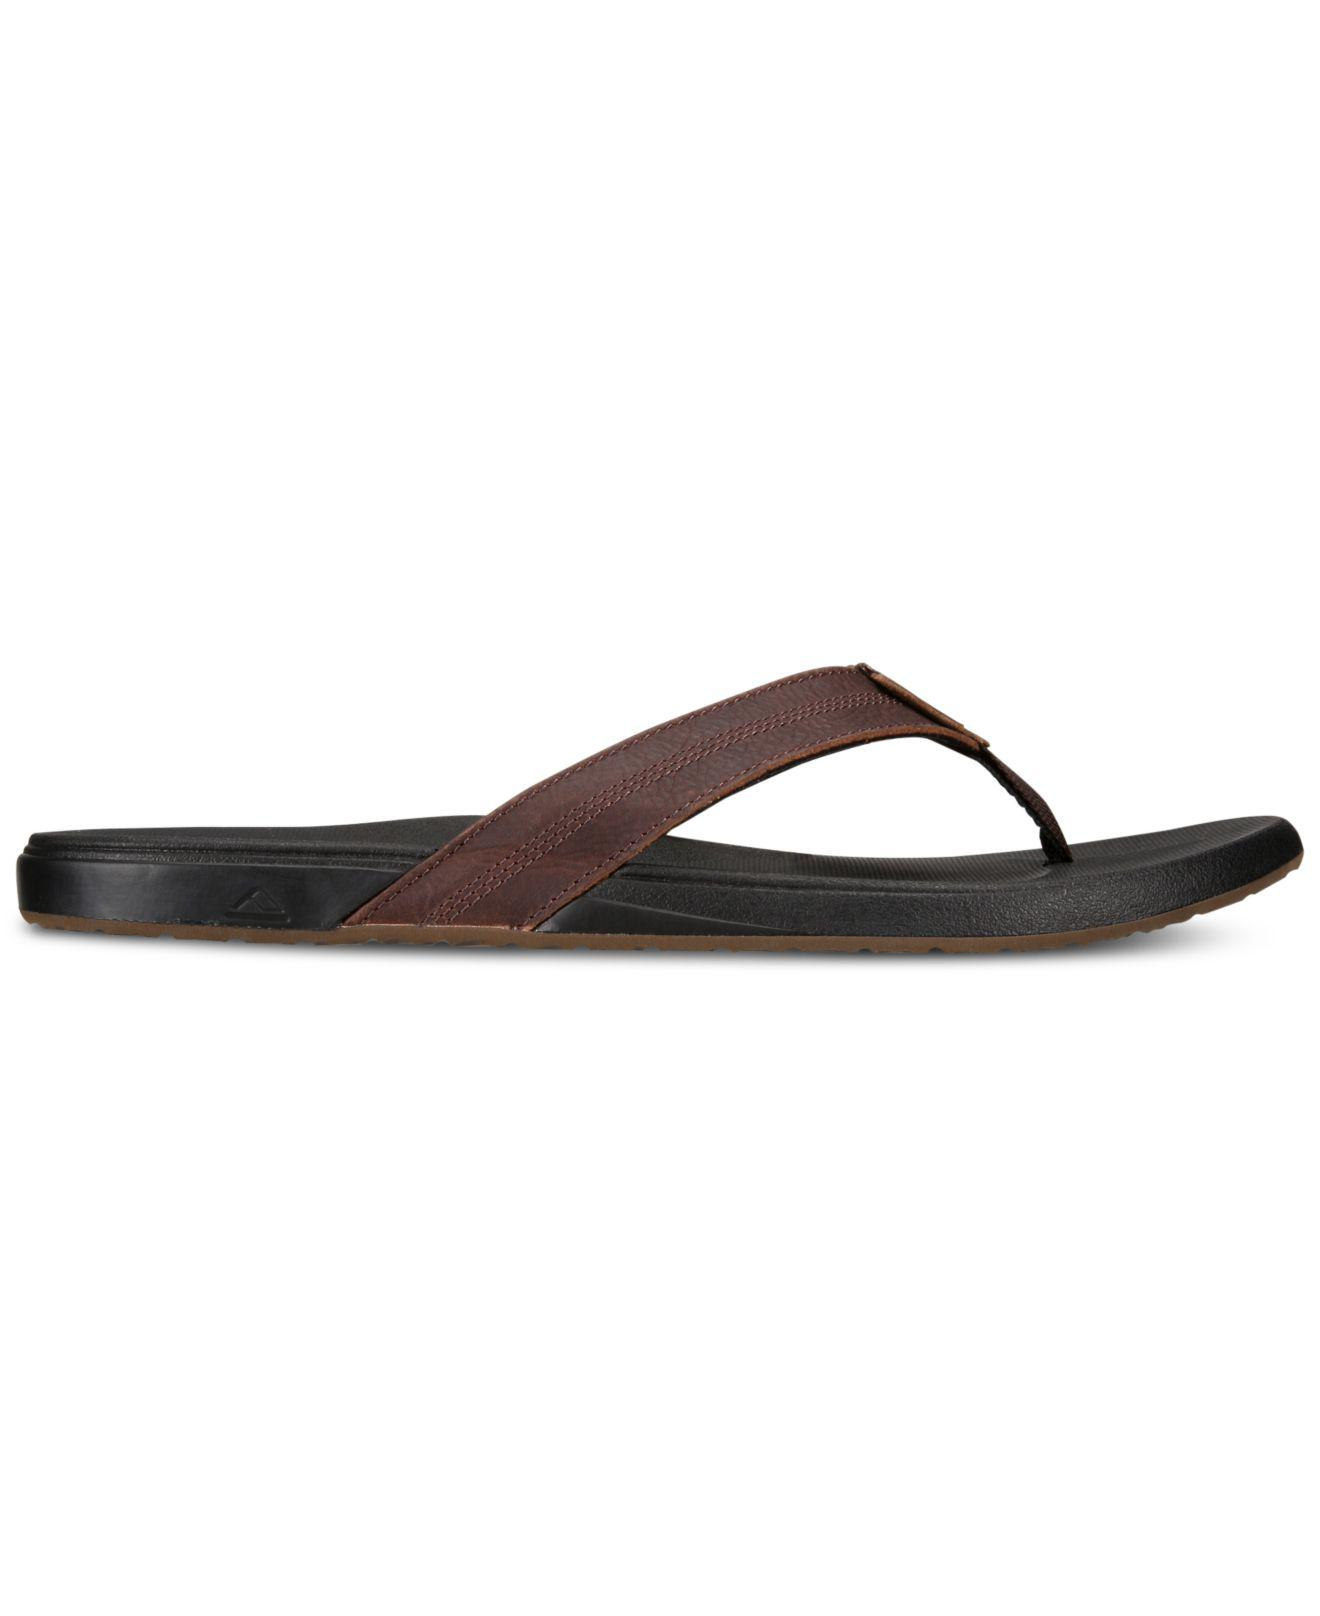 4c9fb9a7436f Lyst - Reef Cushion Bounce Phantom Sandals in Brown for Men